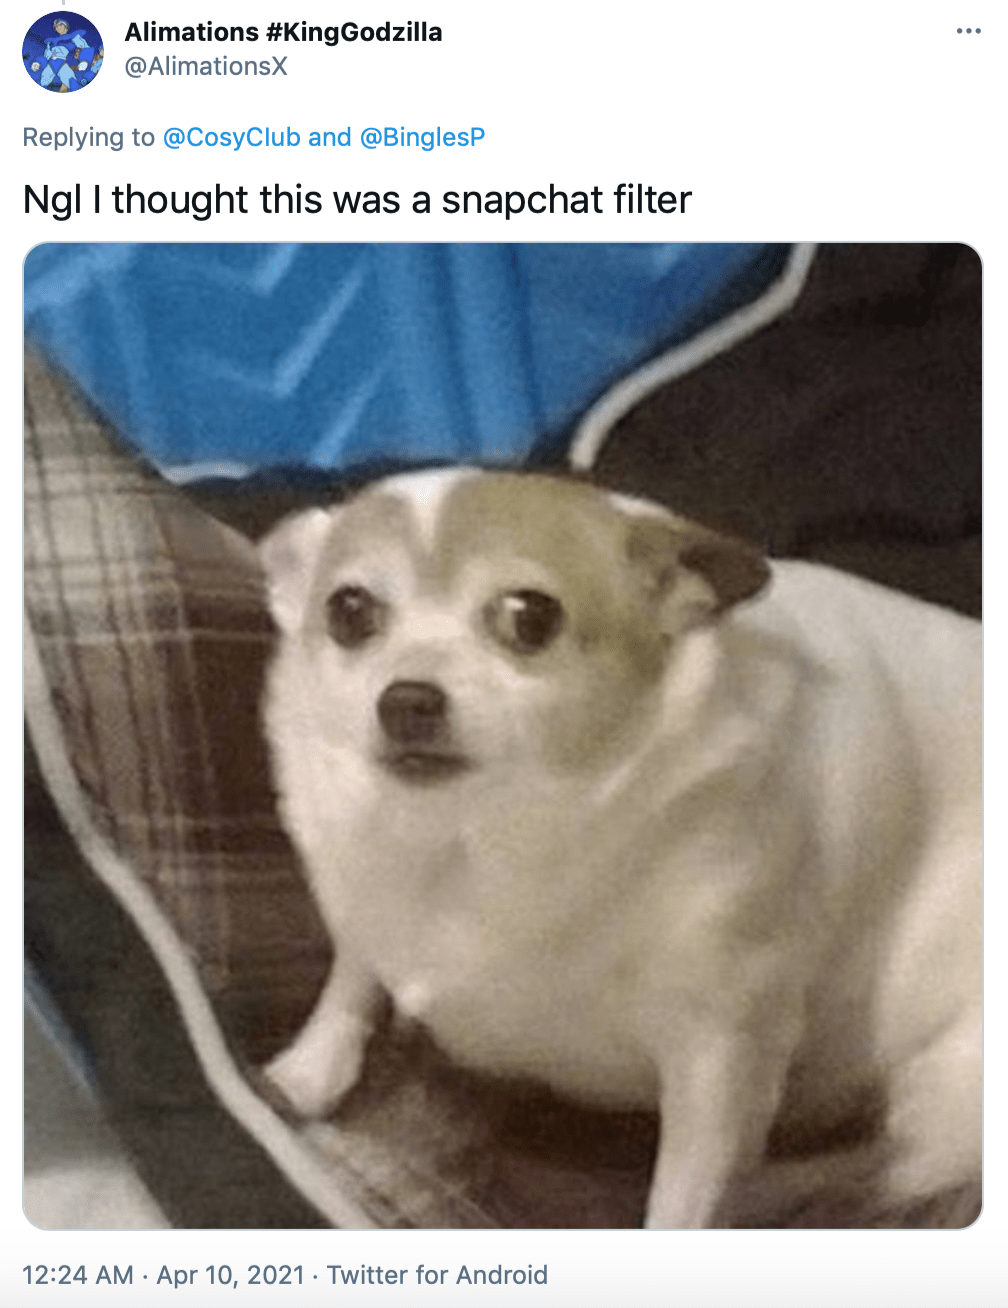 """Ngl I thought this was a snapchat filter"" picture of a small cringing dog"